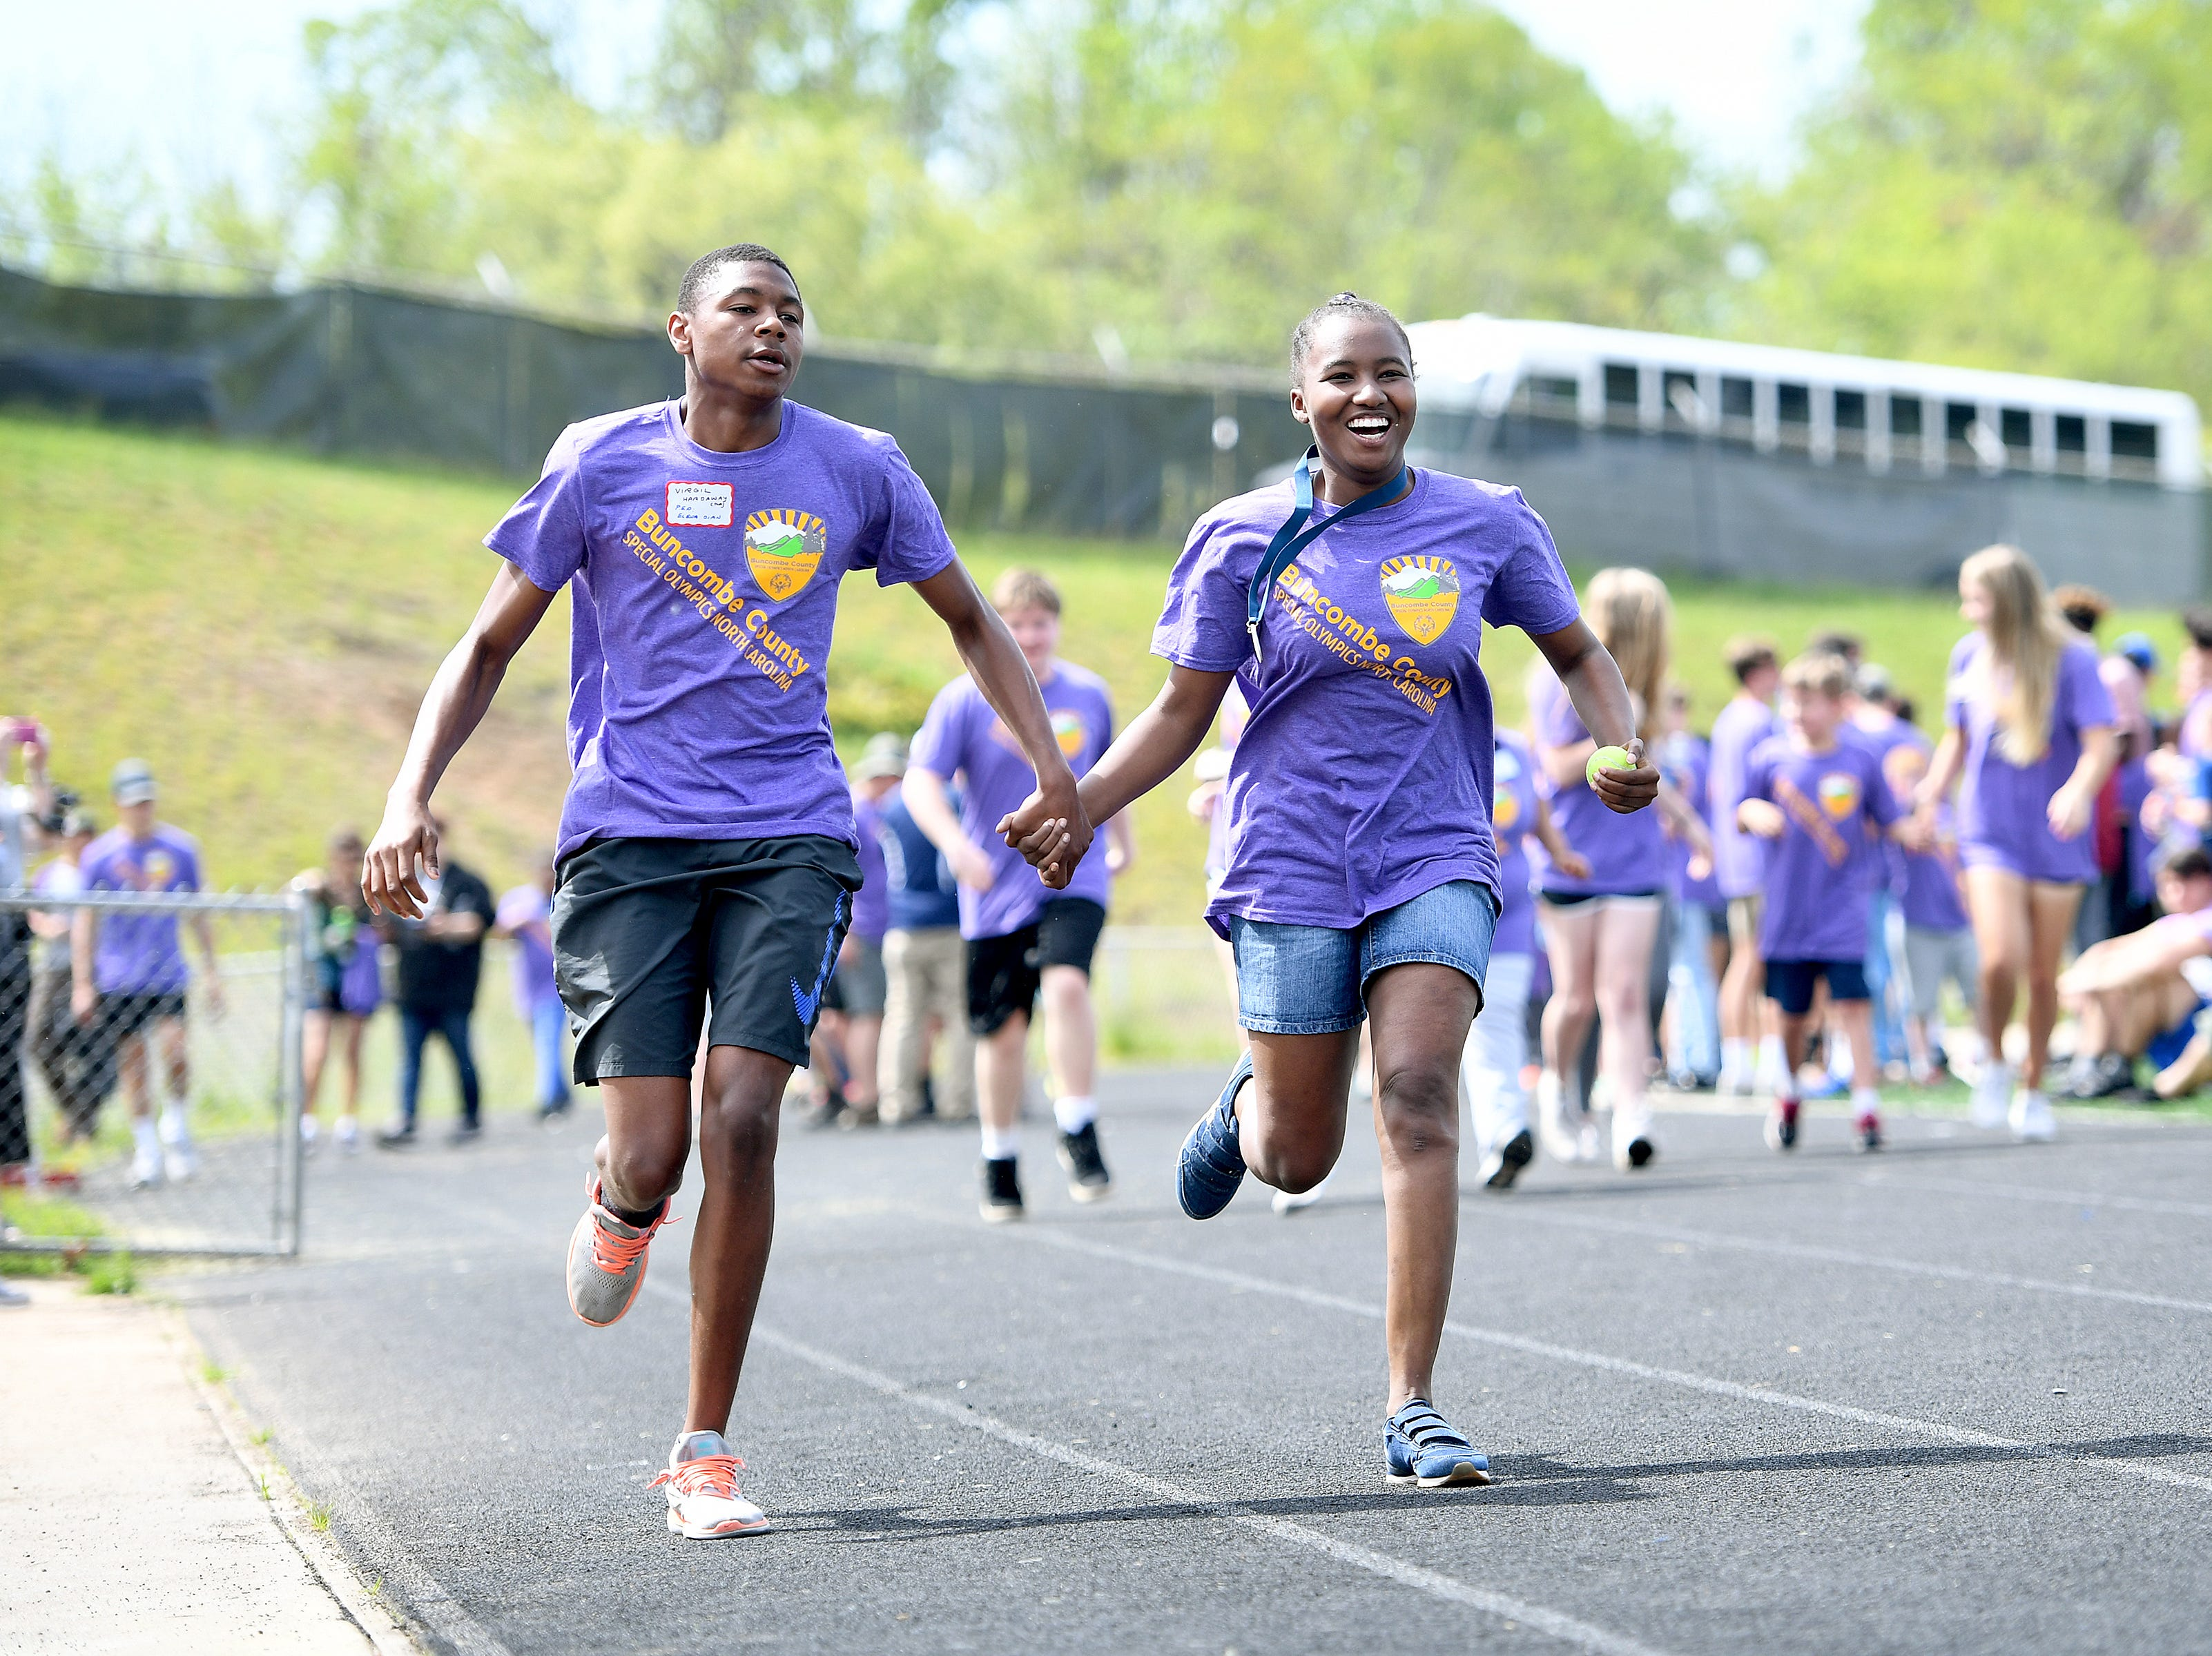 Virgil Hardaway helps his buddy, Progressive Education Program student Quatika Edgerton down the track as she competes in the 50-meter run during the Buncombe County Special Olympics Spring Games at Roberson High School on Thursday, May 3, 2018.